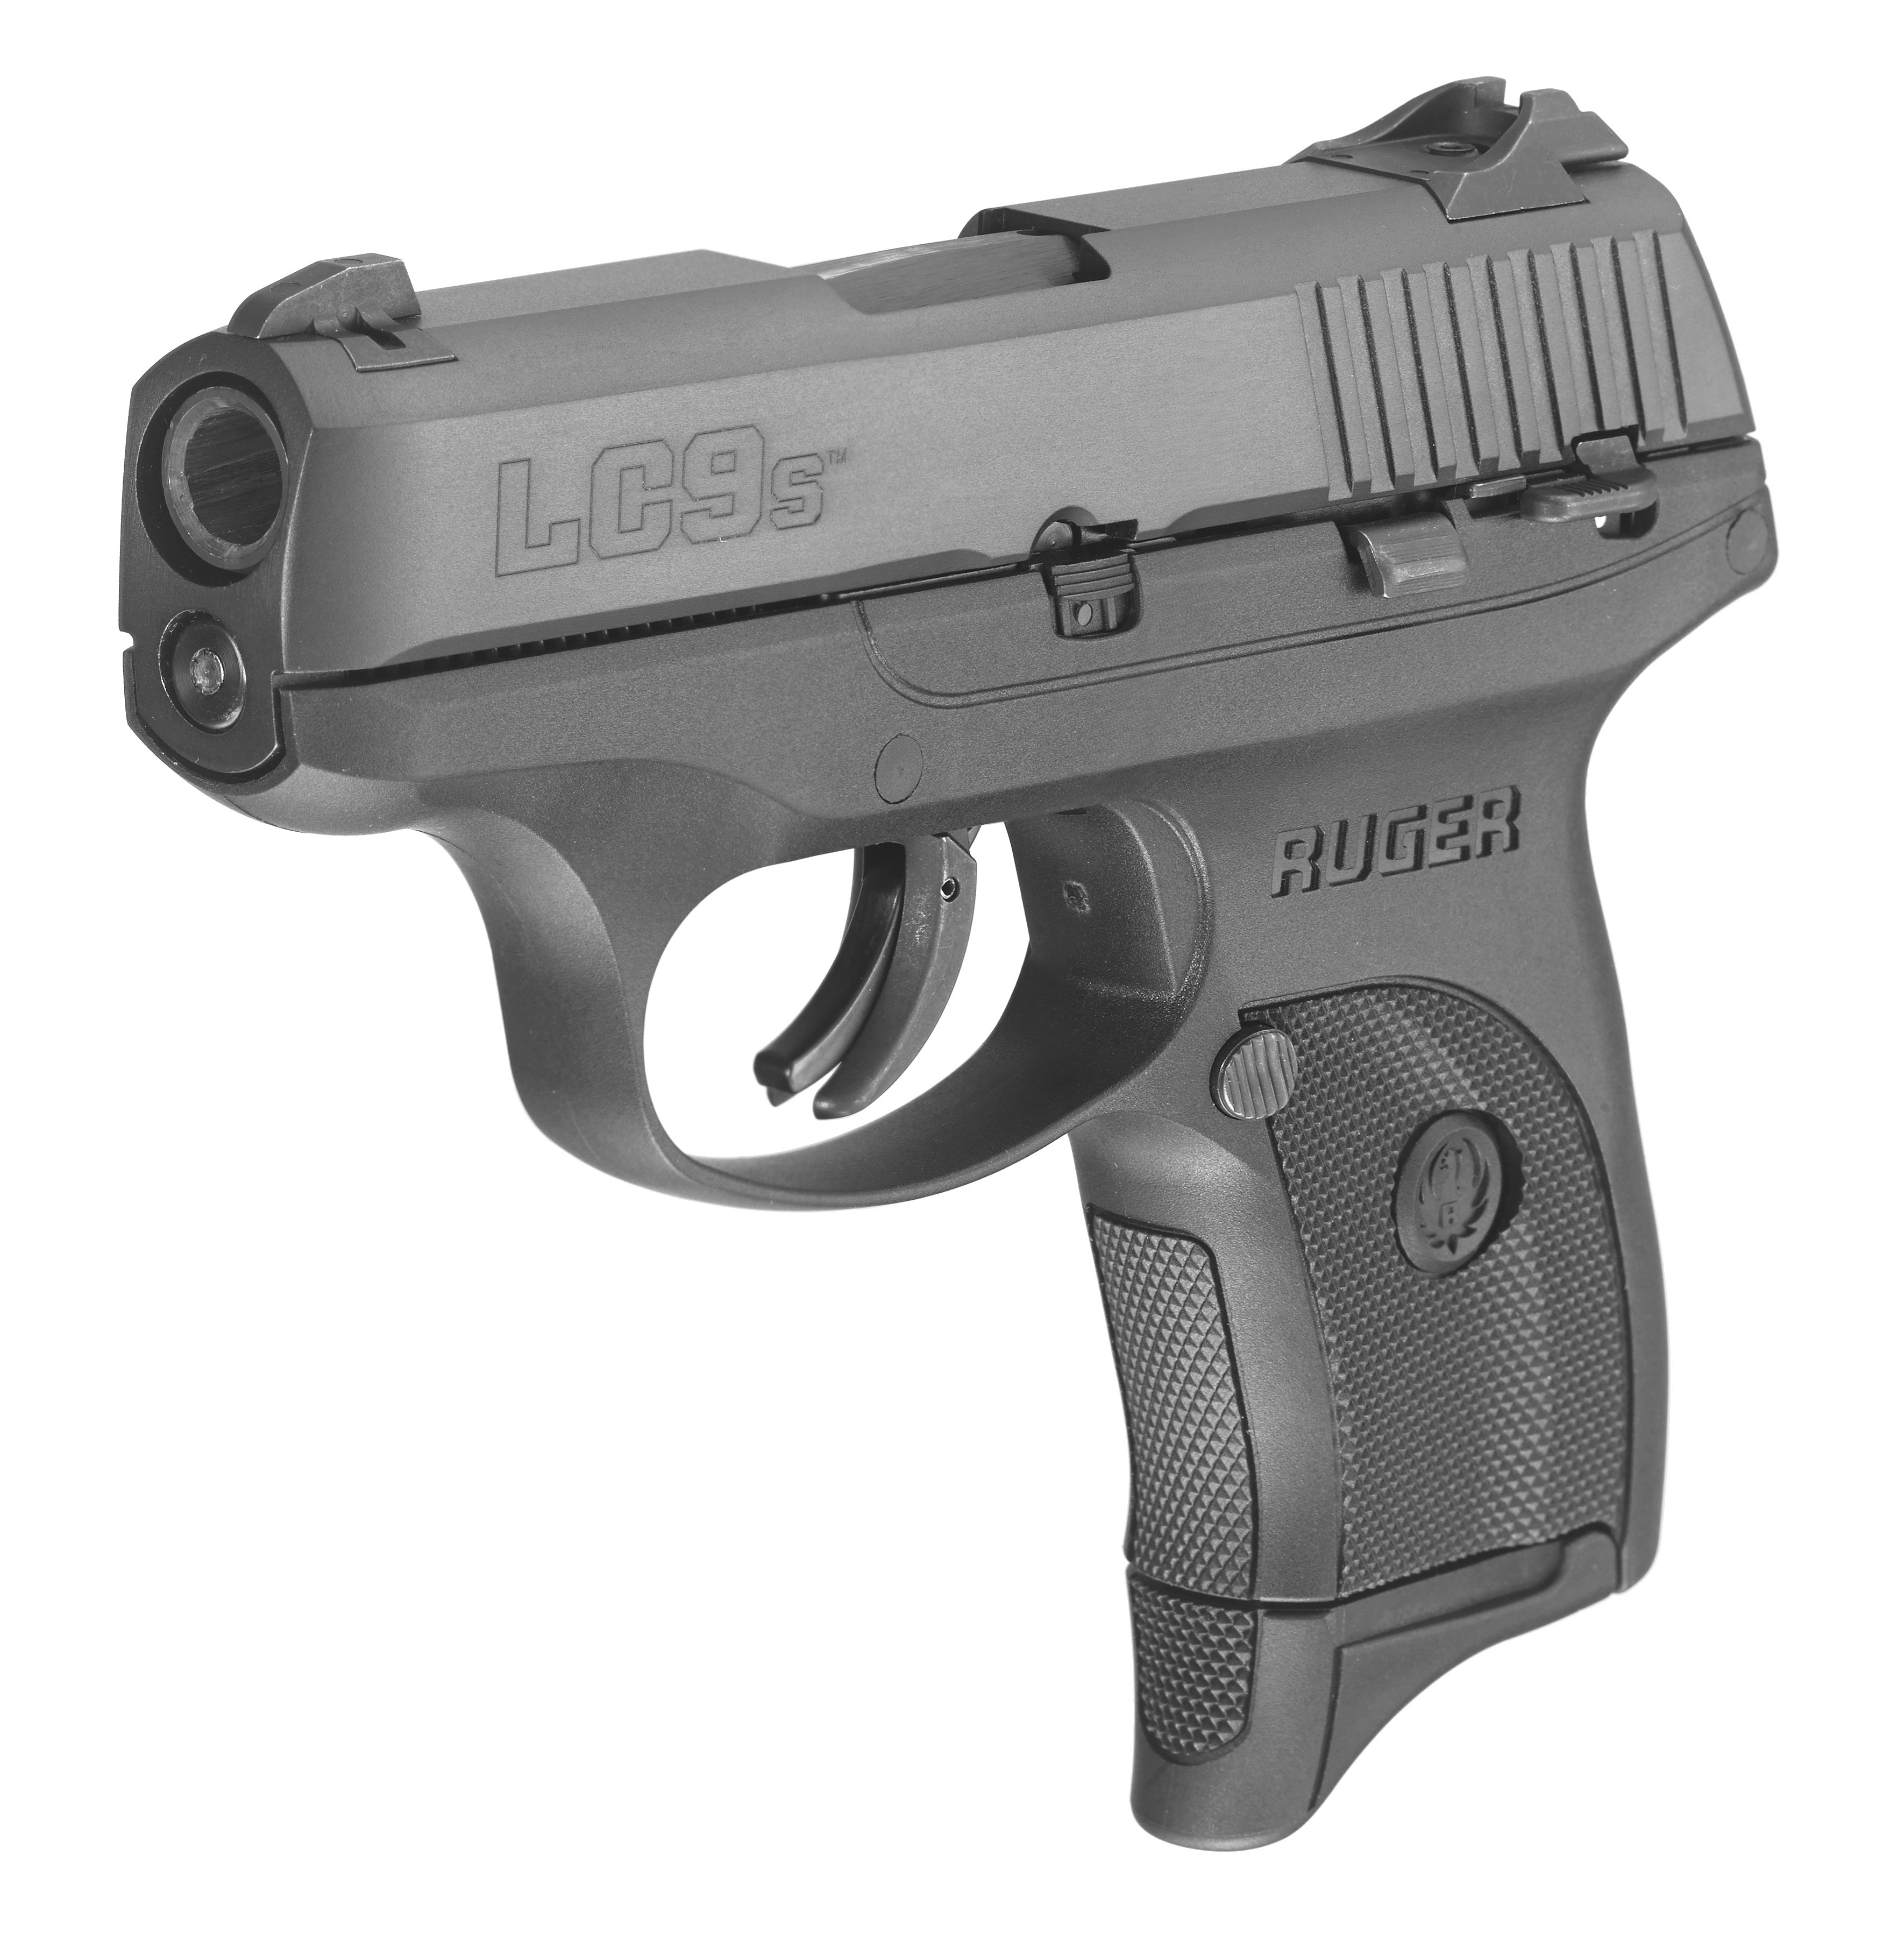 Ruger LC9s Striker Fired Pistol